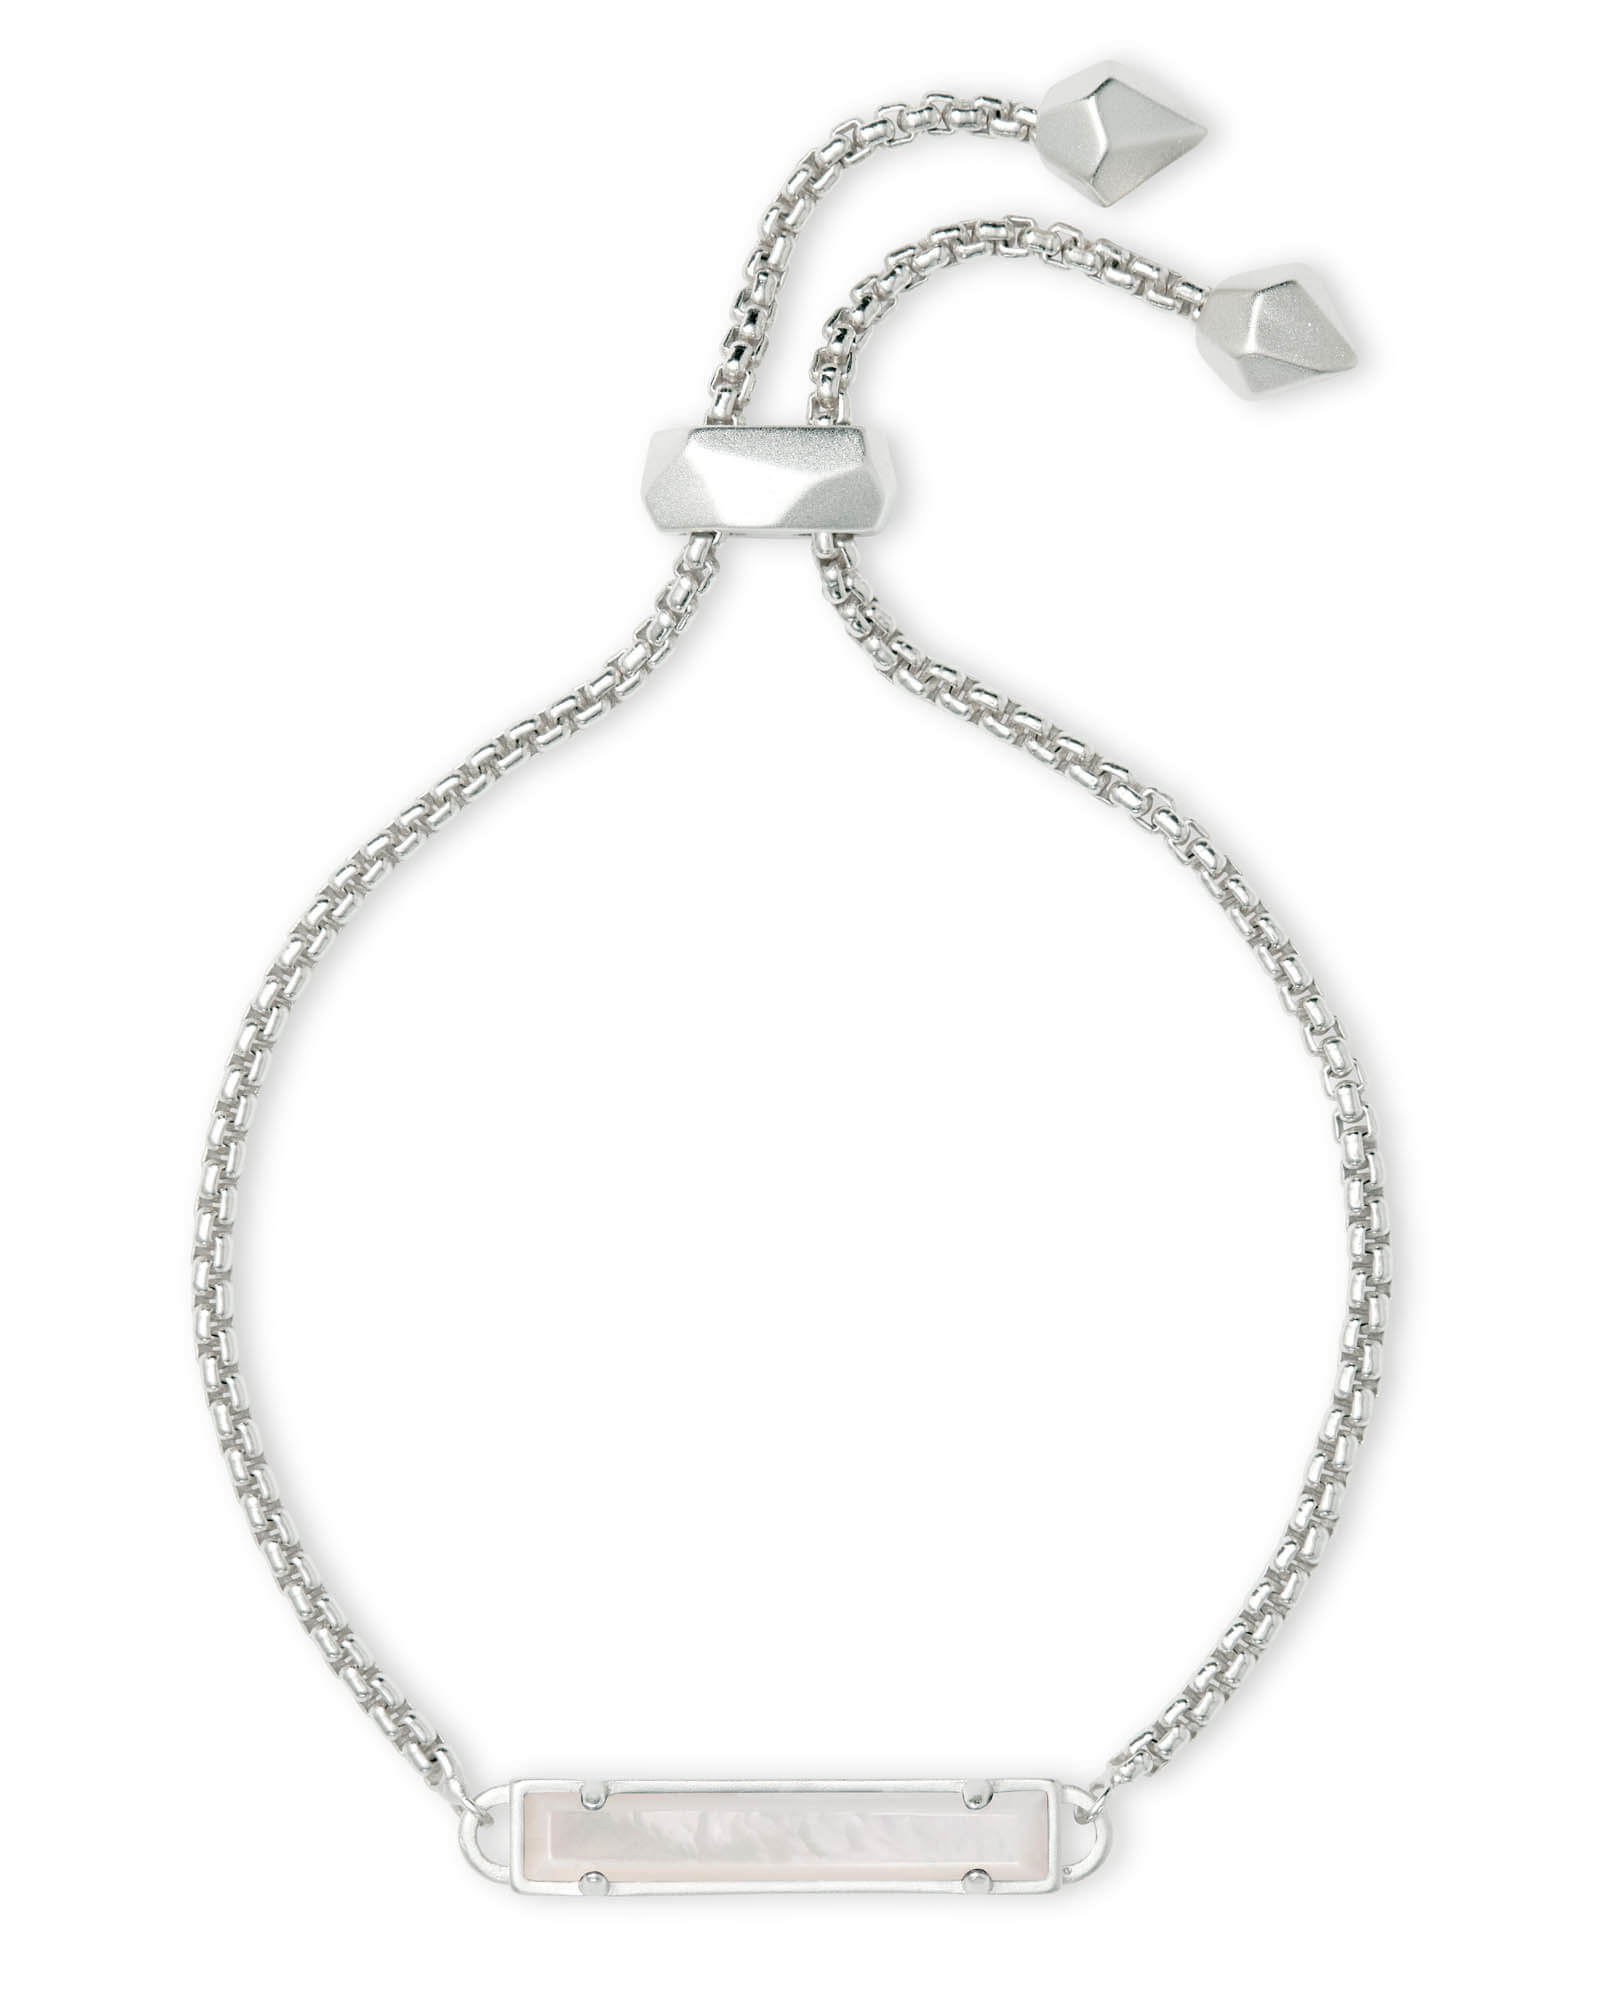 Stan Silver Adjustable Chain Bracelet in Ivory Pearl